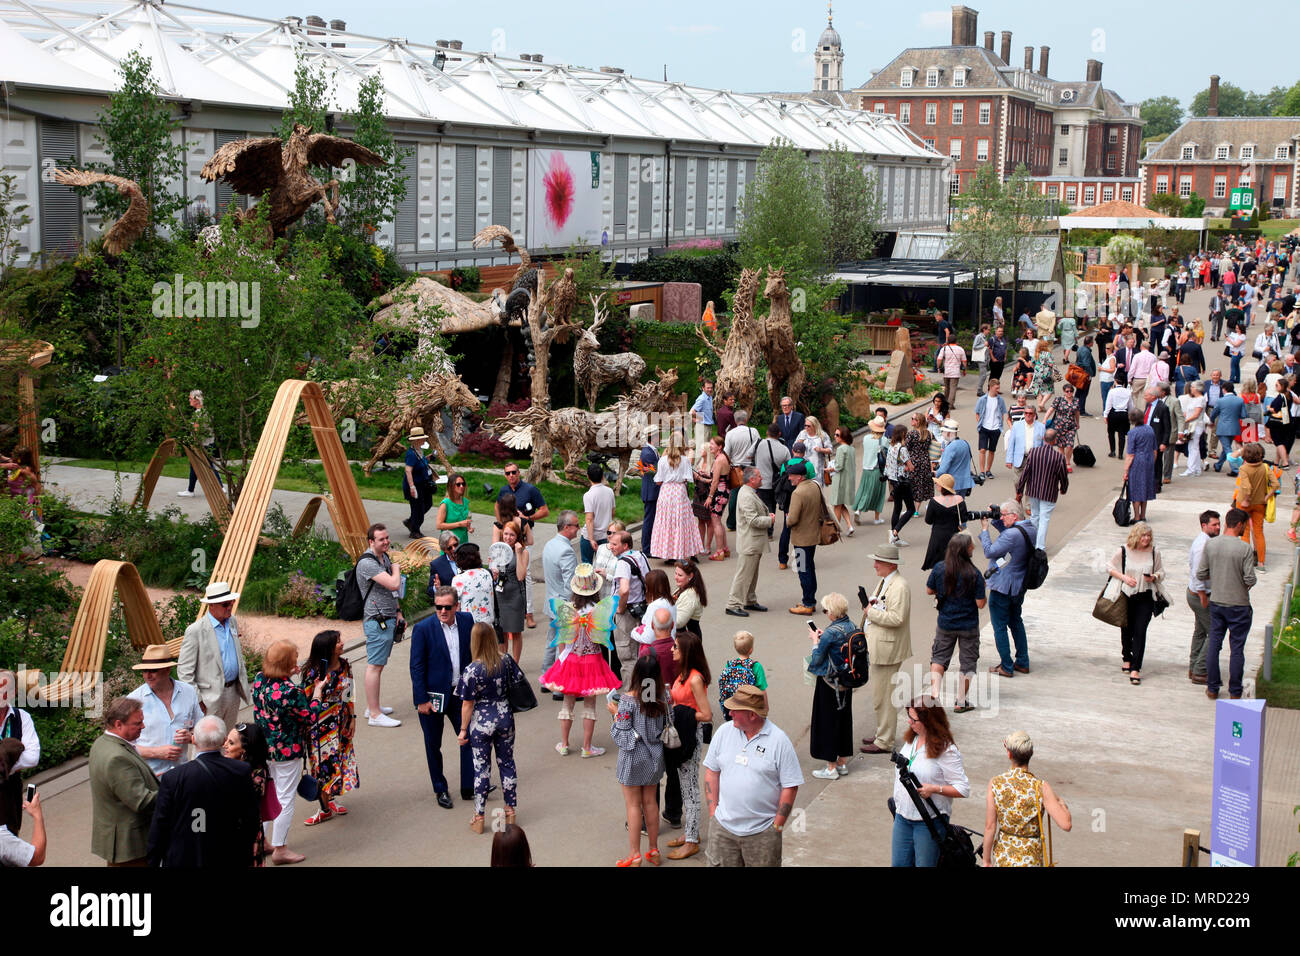 Main Avenue on Press Day, Chelsea Flower Show 2018 - Stock Image